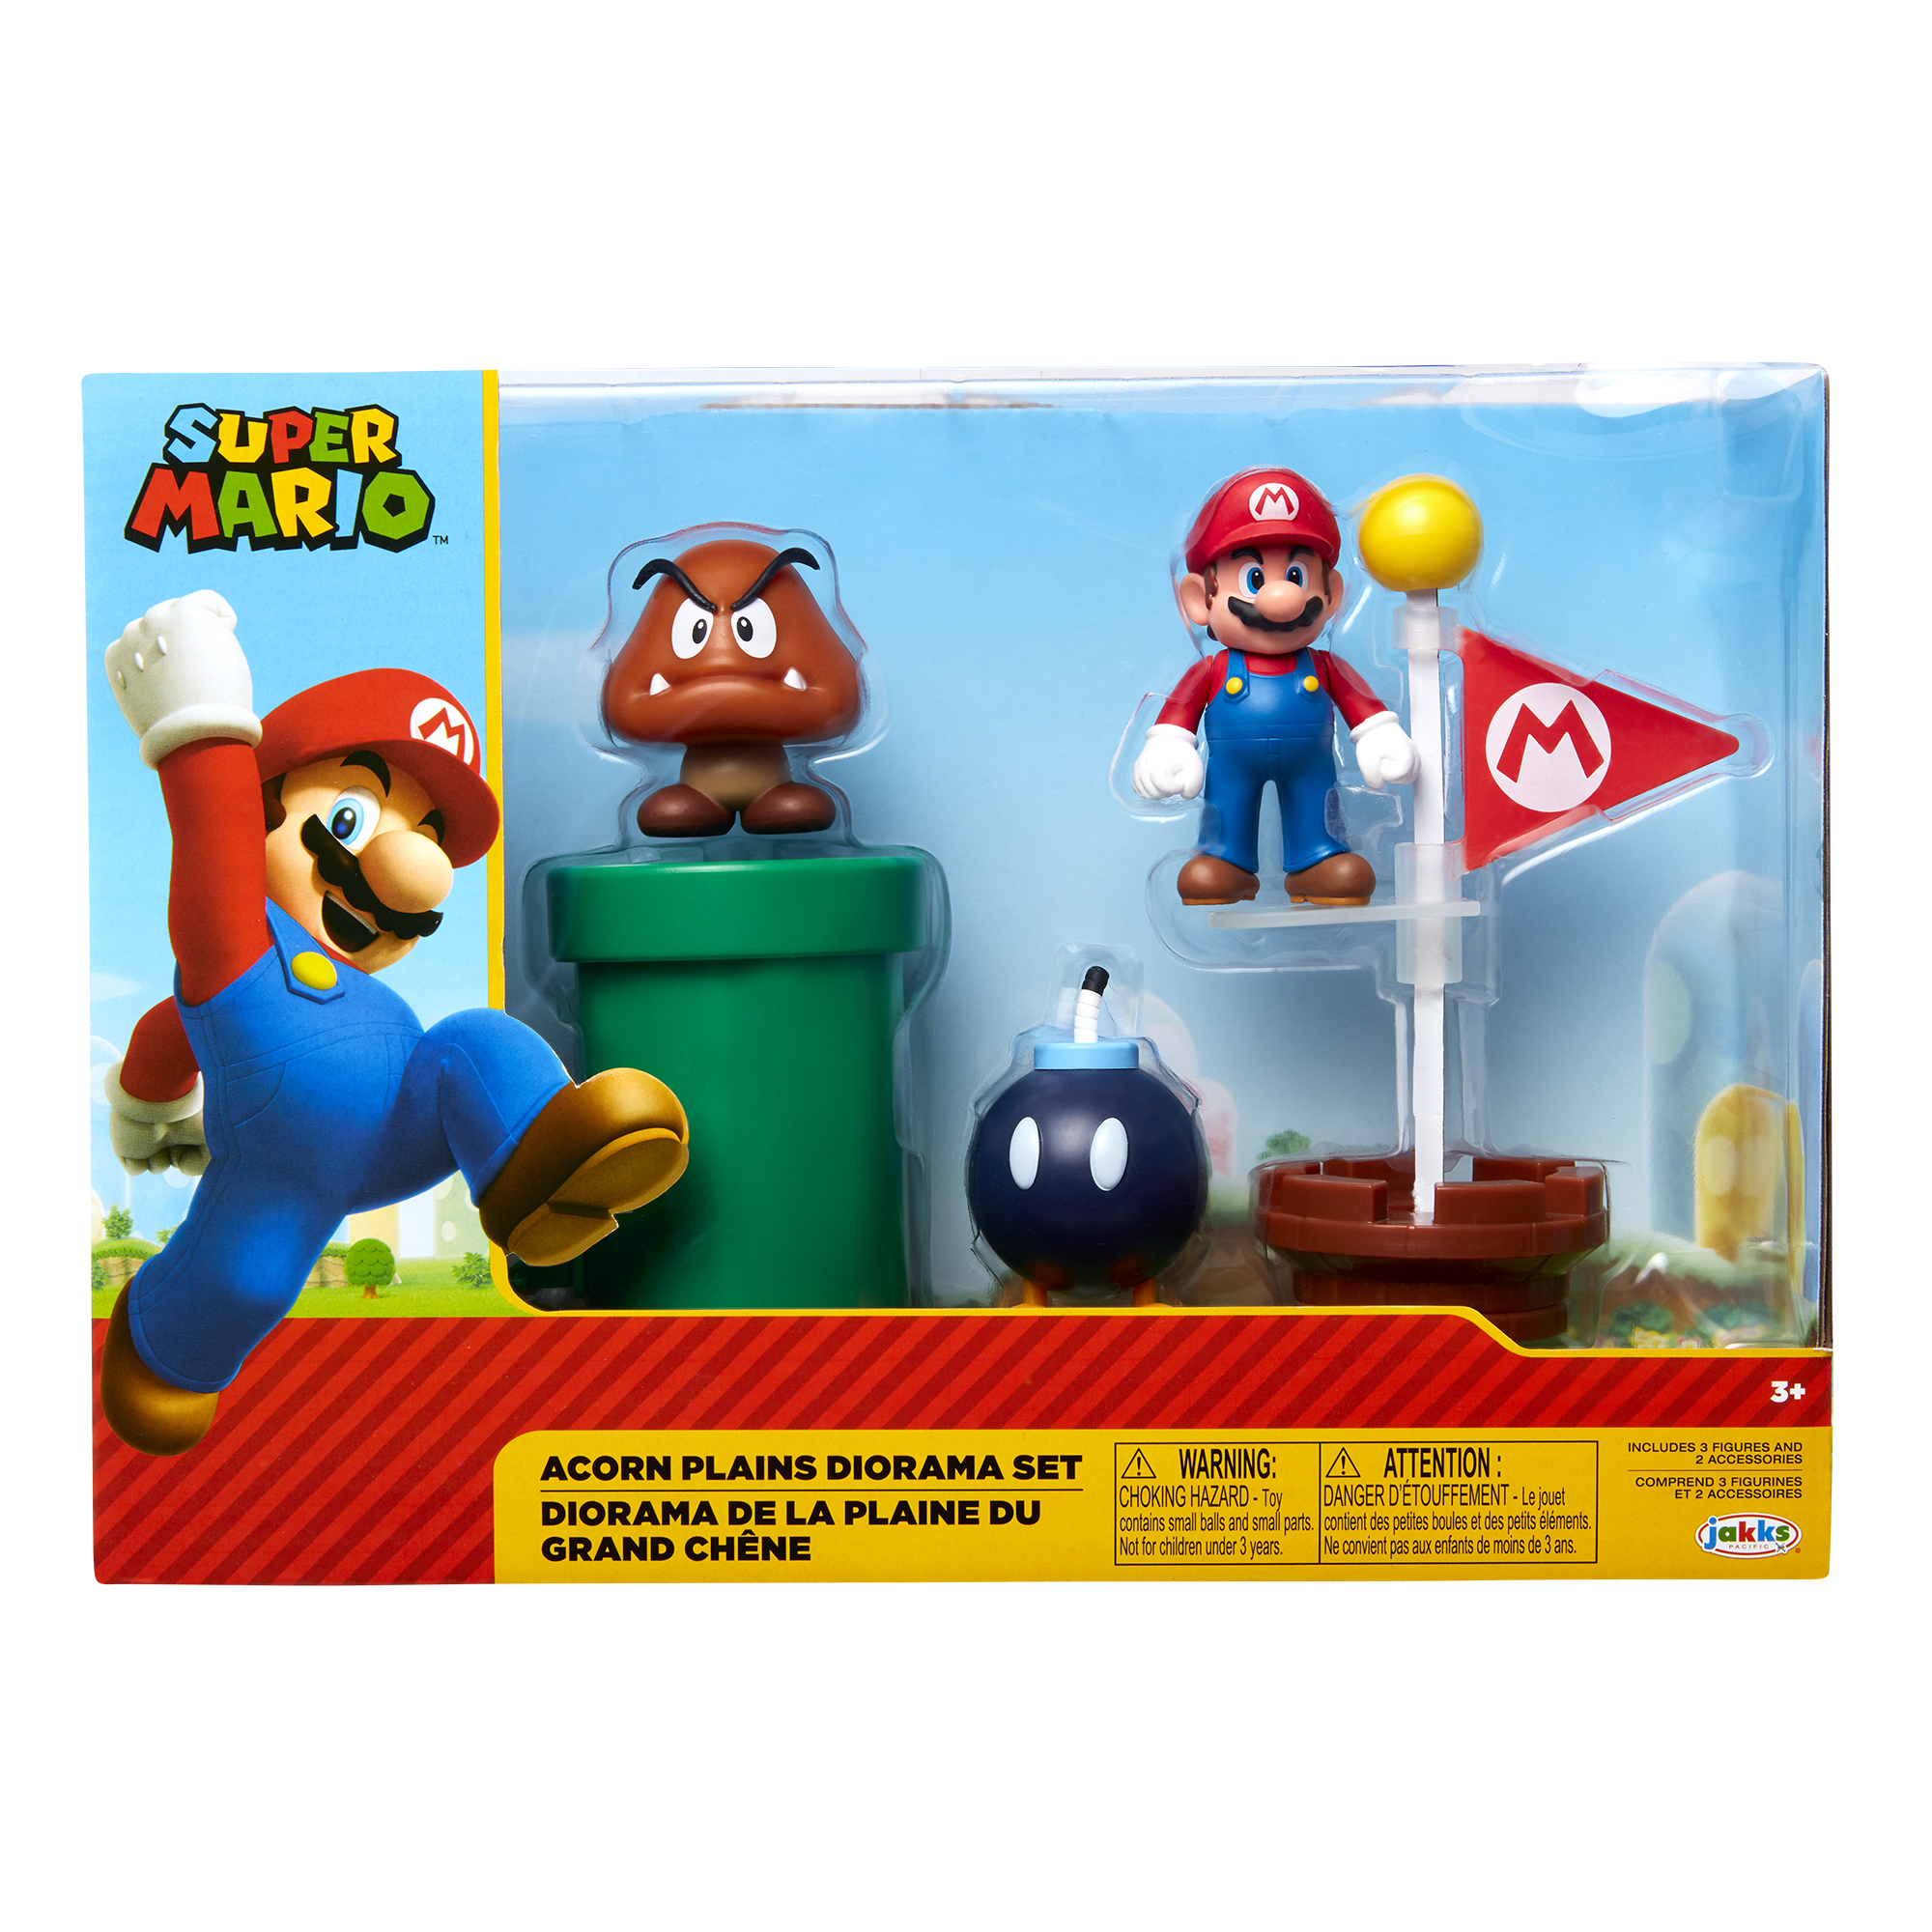 Super Mario 2.5 Acorn Plains Diorama Set